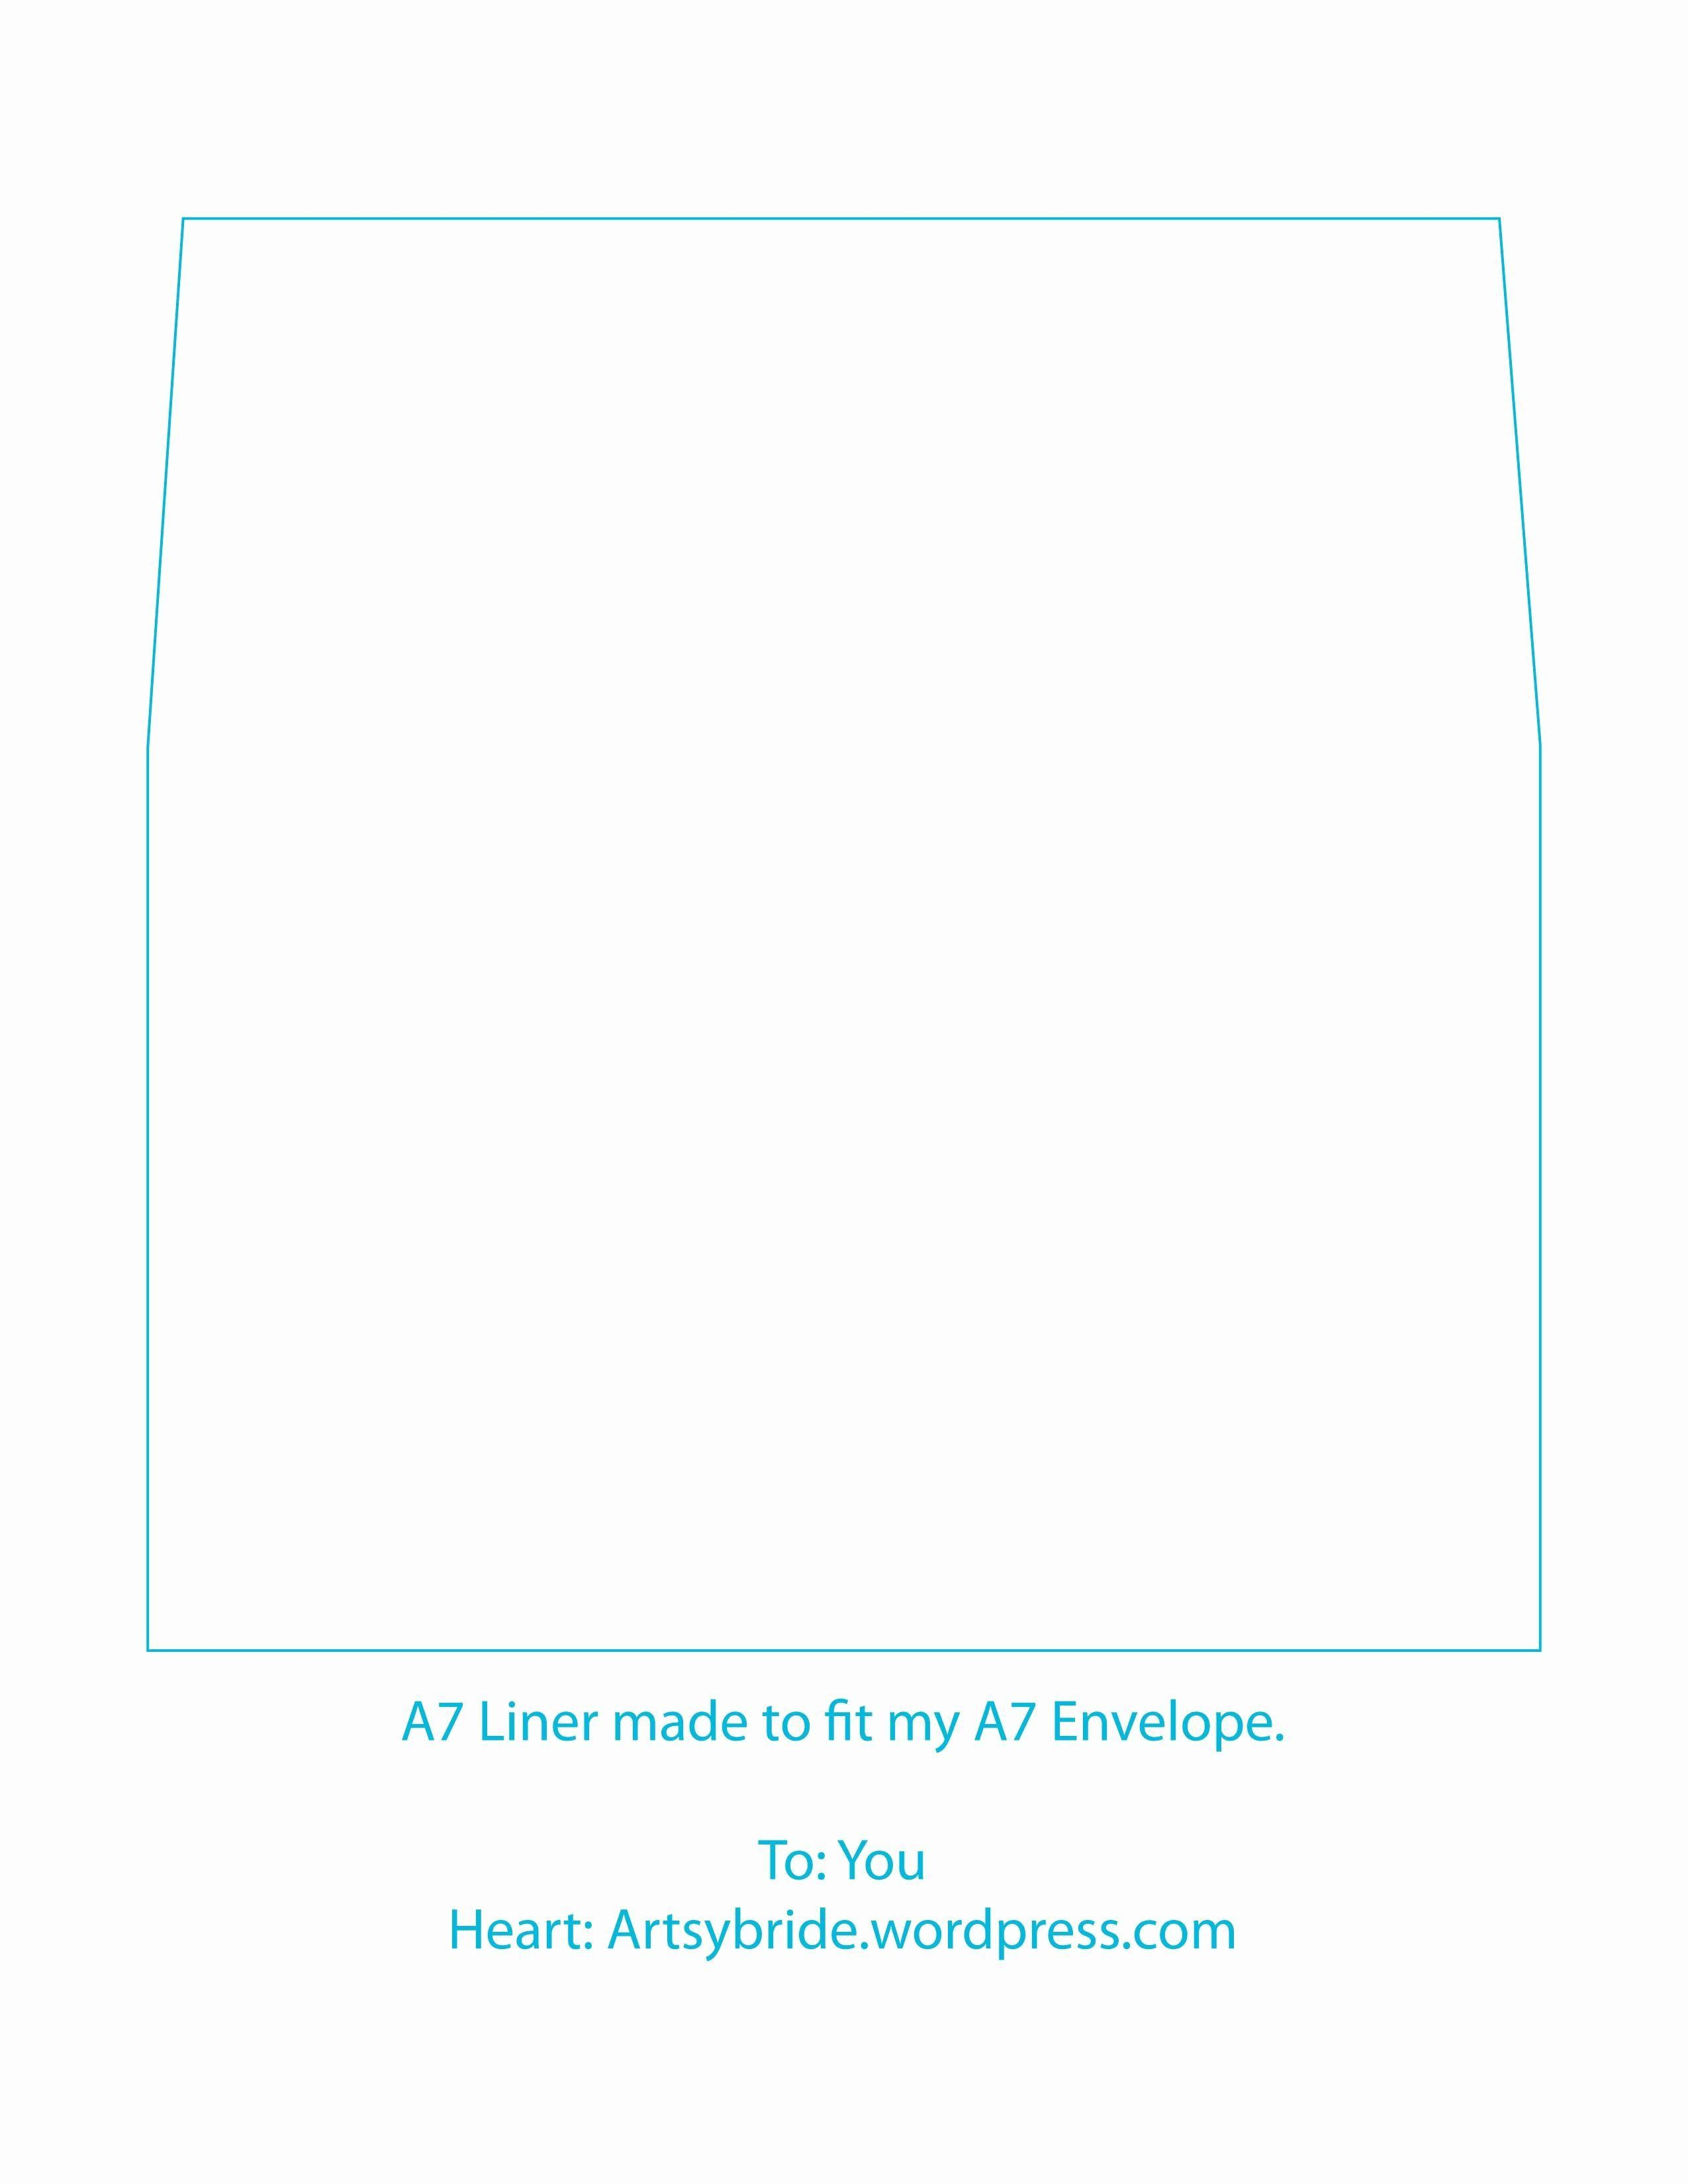 002 Awesome A7 Envelope Liner Template Idea  Printable Illustrator FreeFull